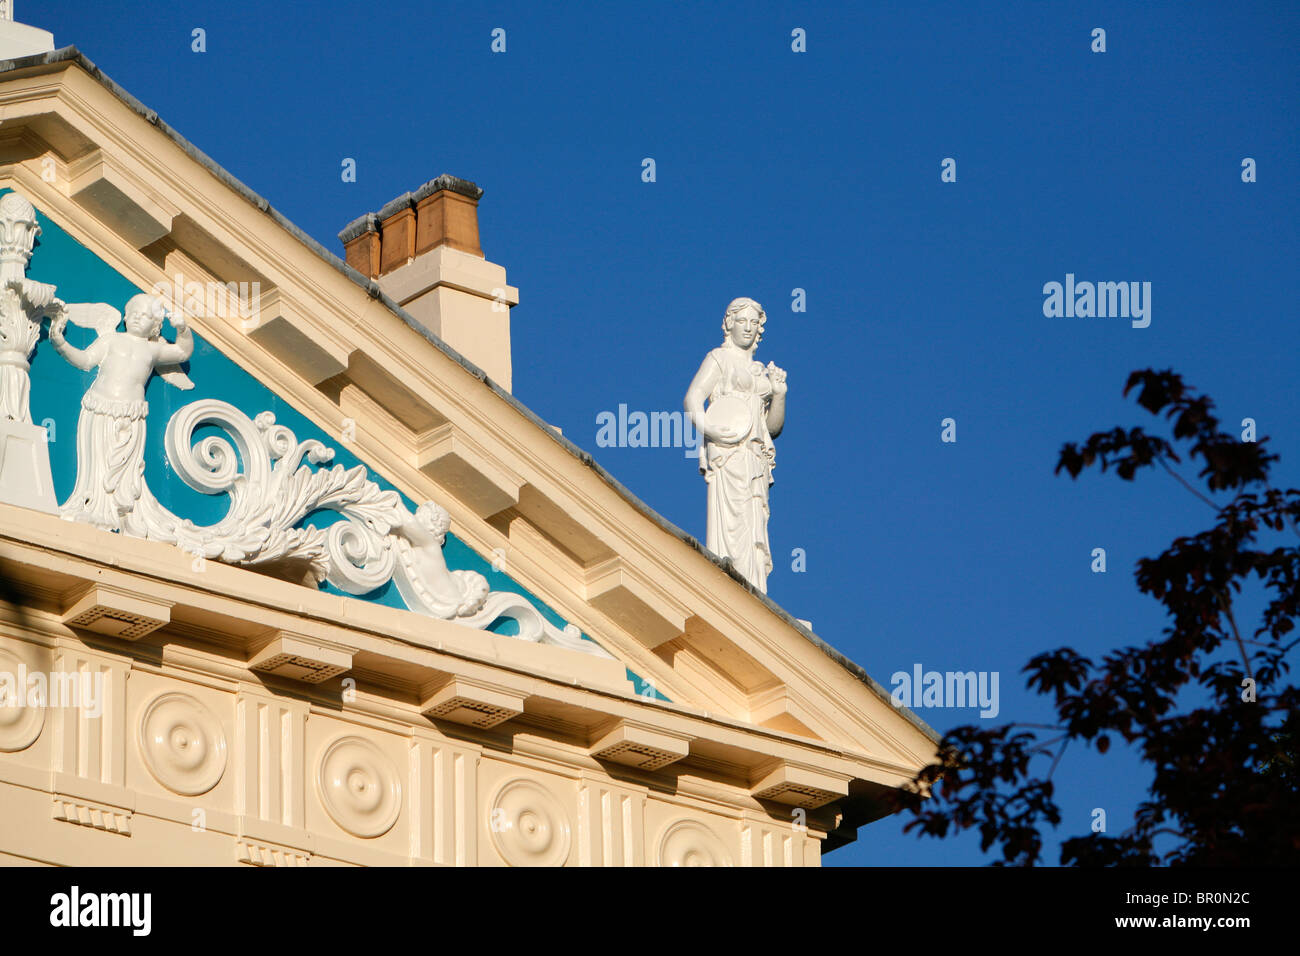 Classical sculpture on top of the pediment of Hanover Terrace, Regent's Park, London, UK - Stock Image